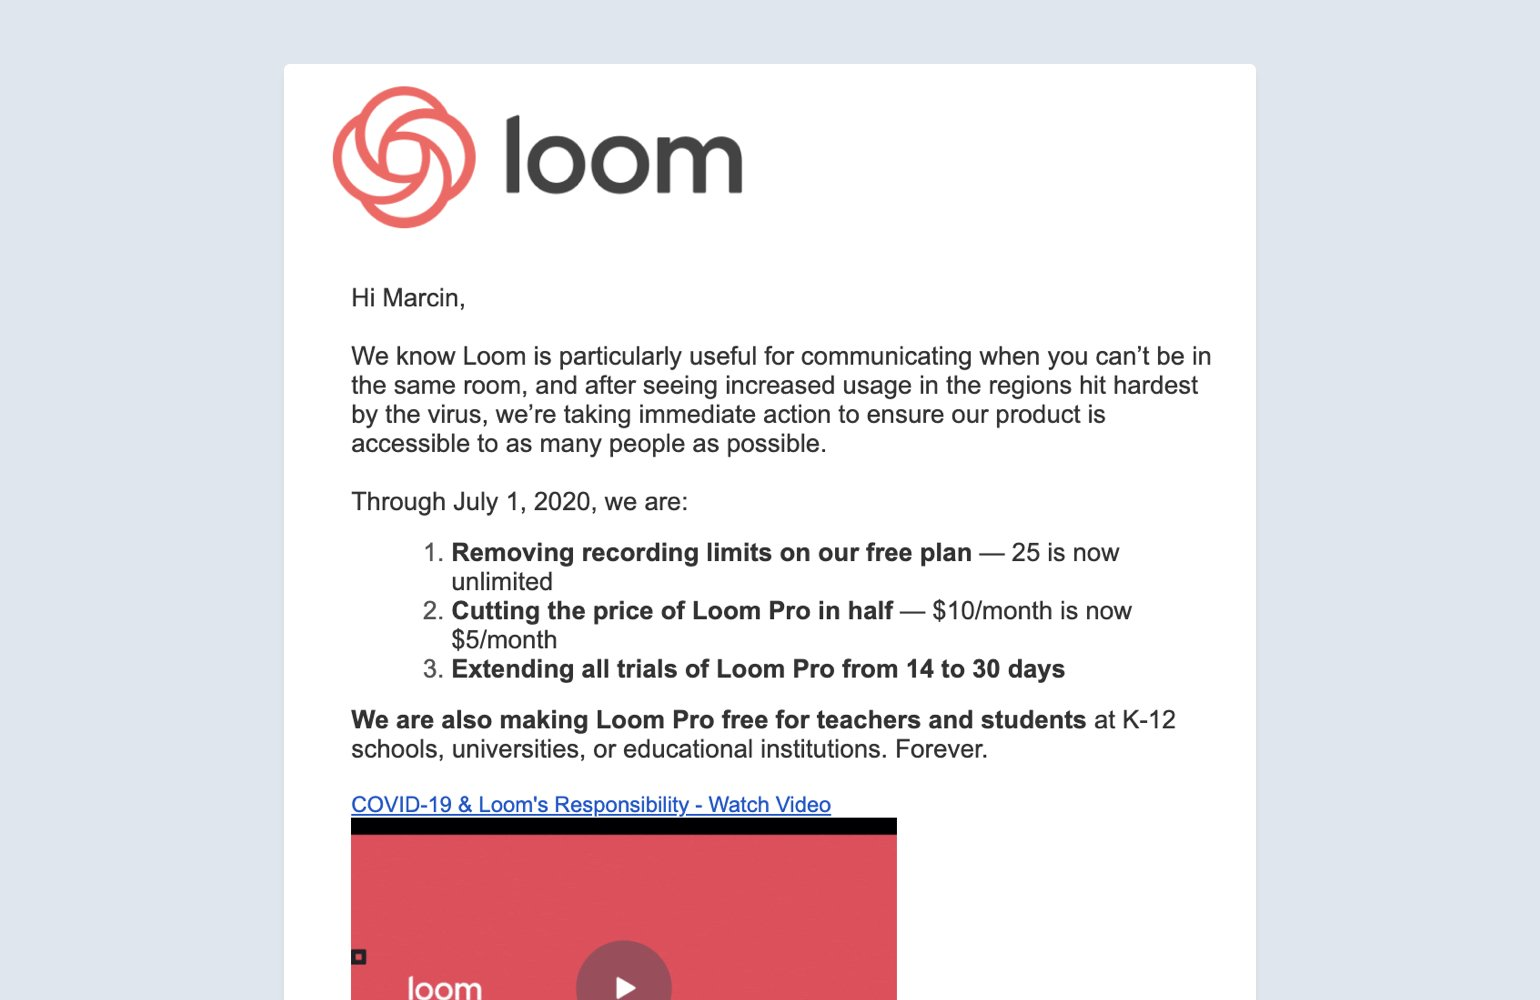 loom email communication example during uncertain times